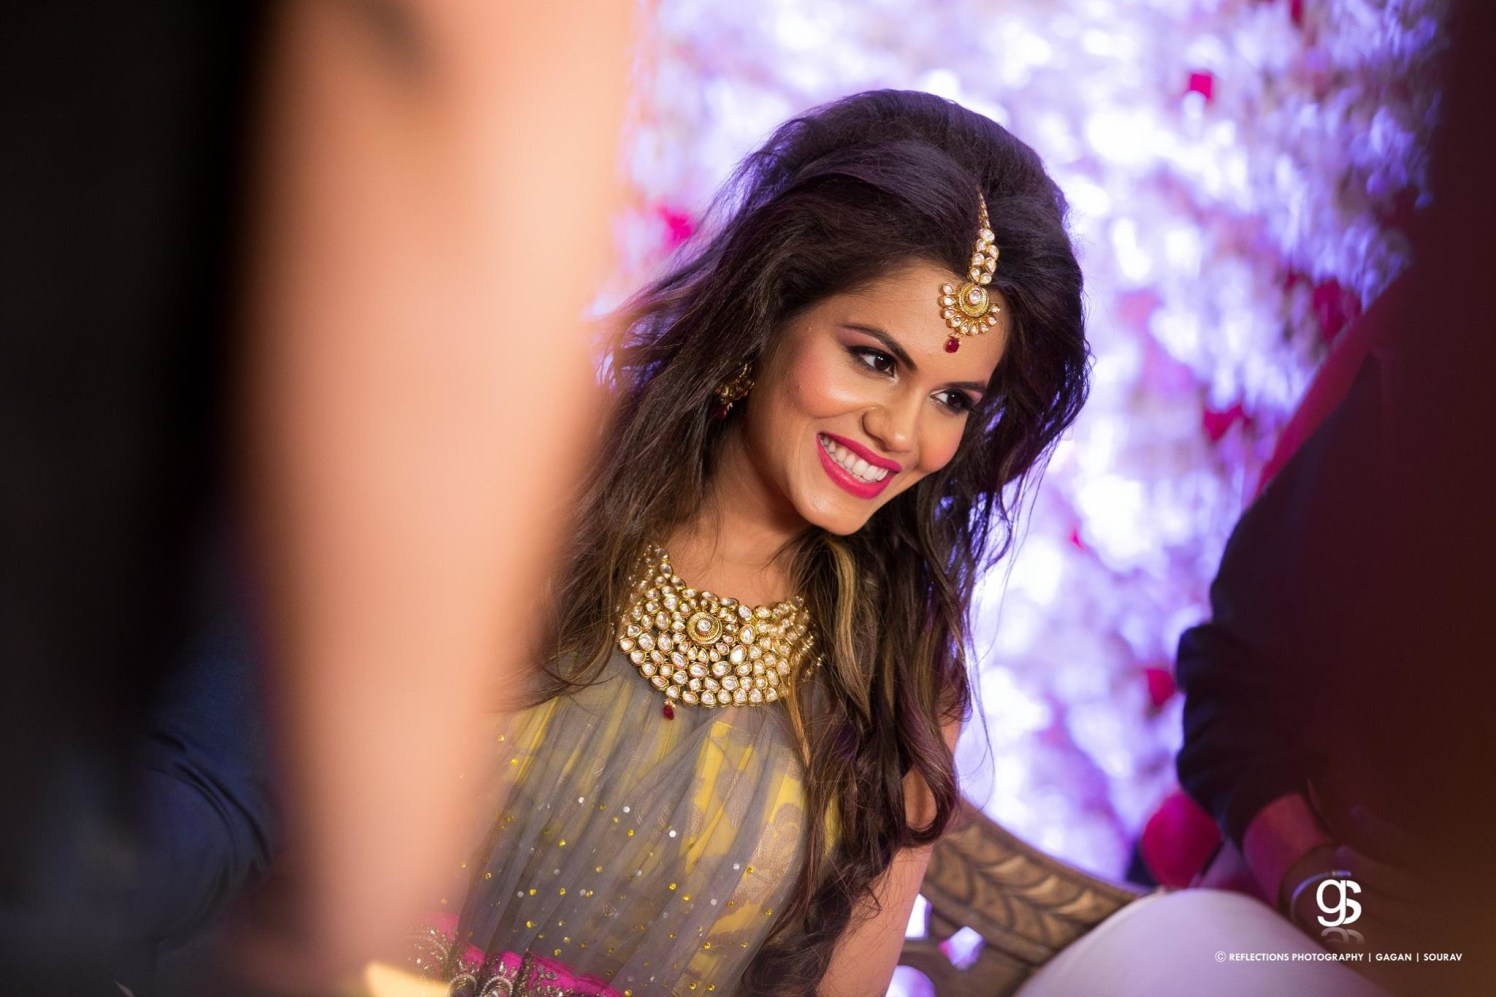 Glowing bride! by Reflections Photography Wedding-photography | Weddings Photos & Ideas